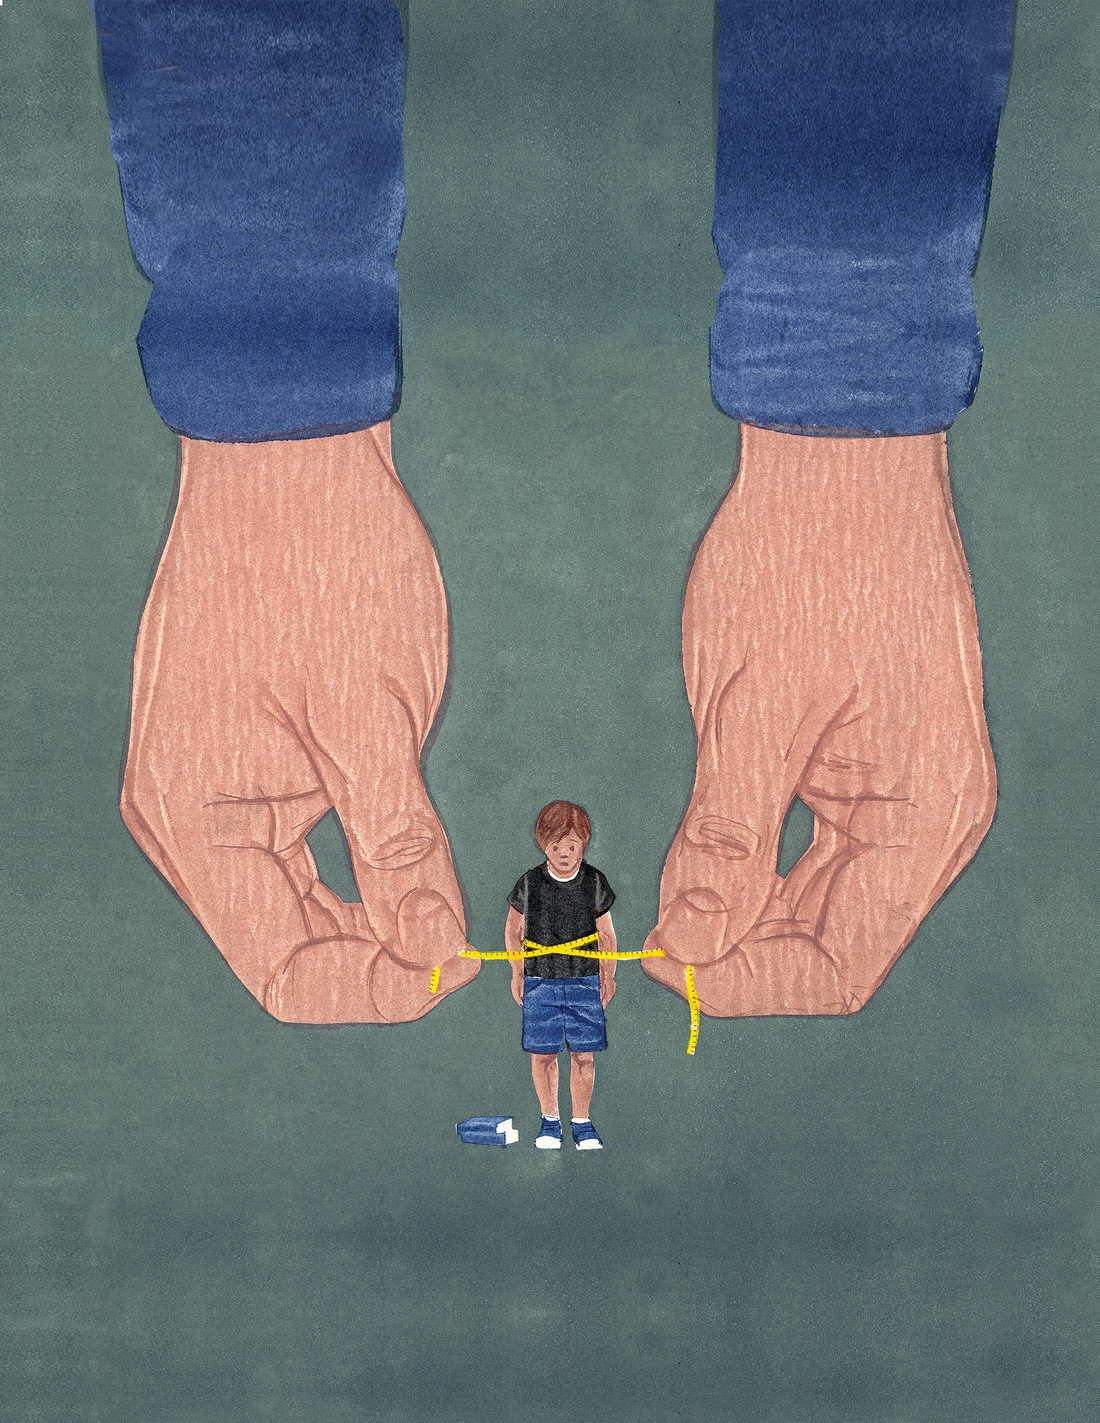 illustraton of hands tying a tape measure around a boy's waist